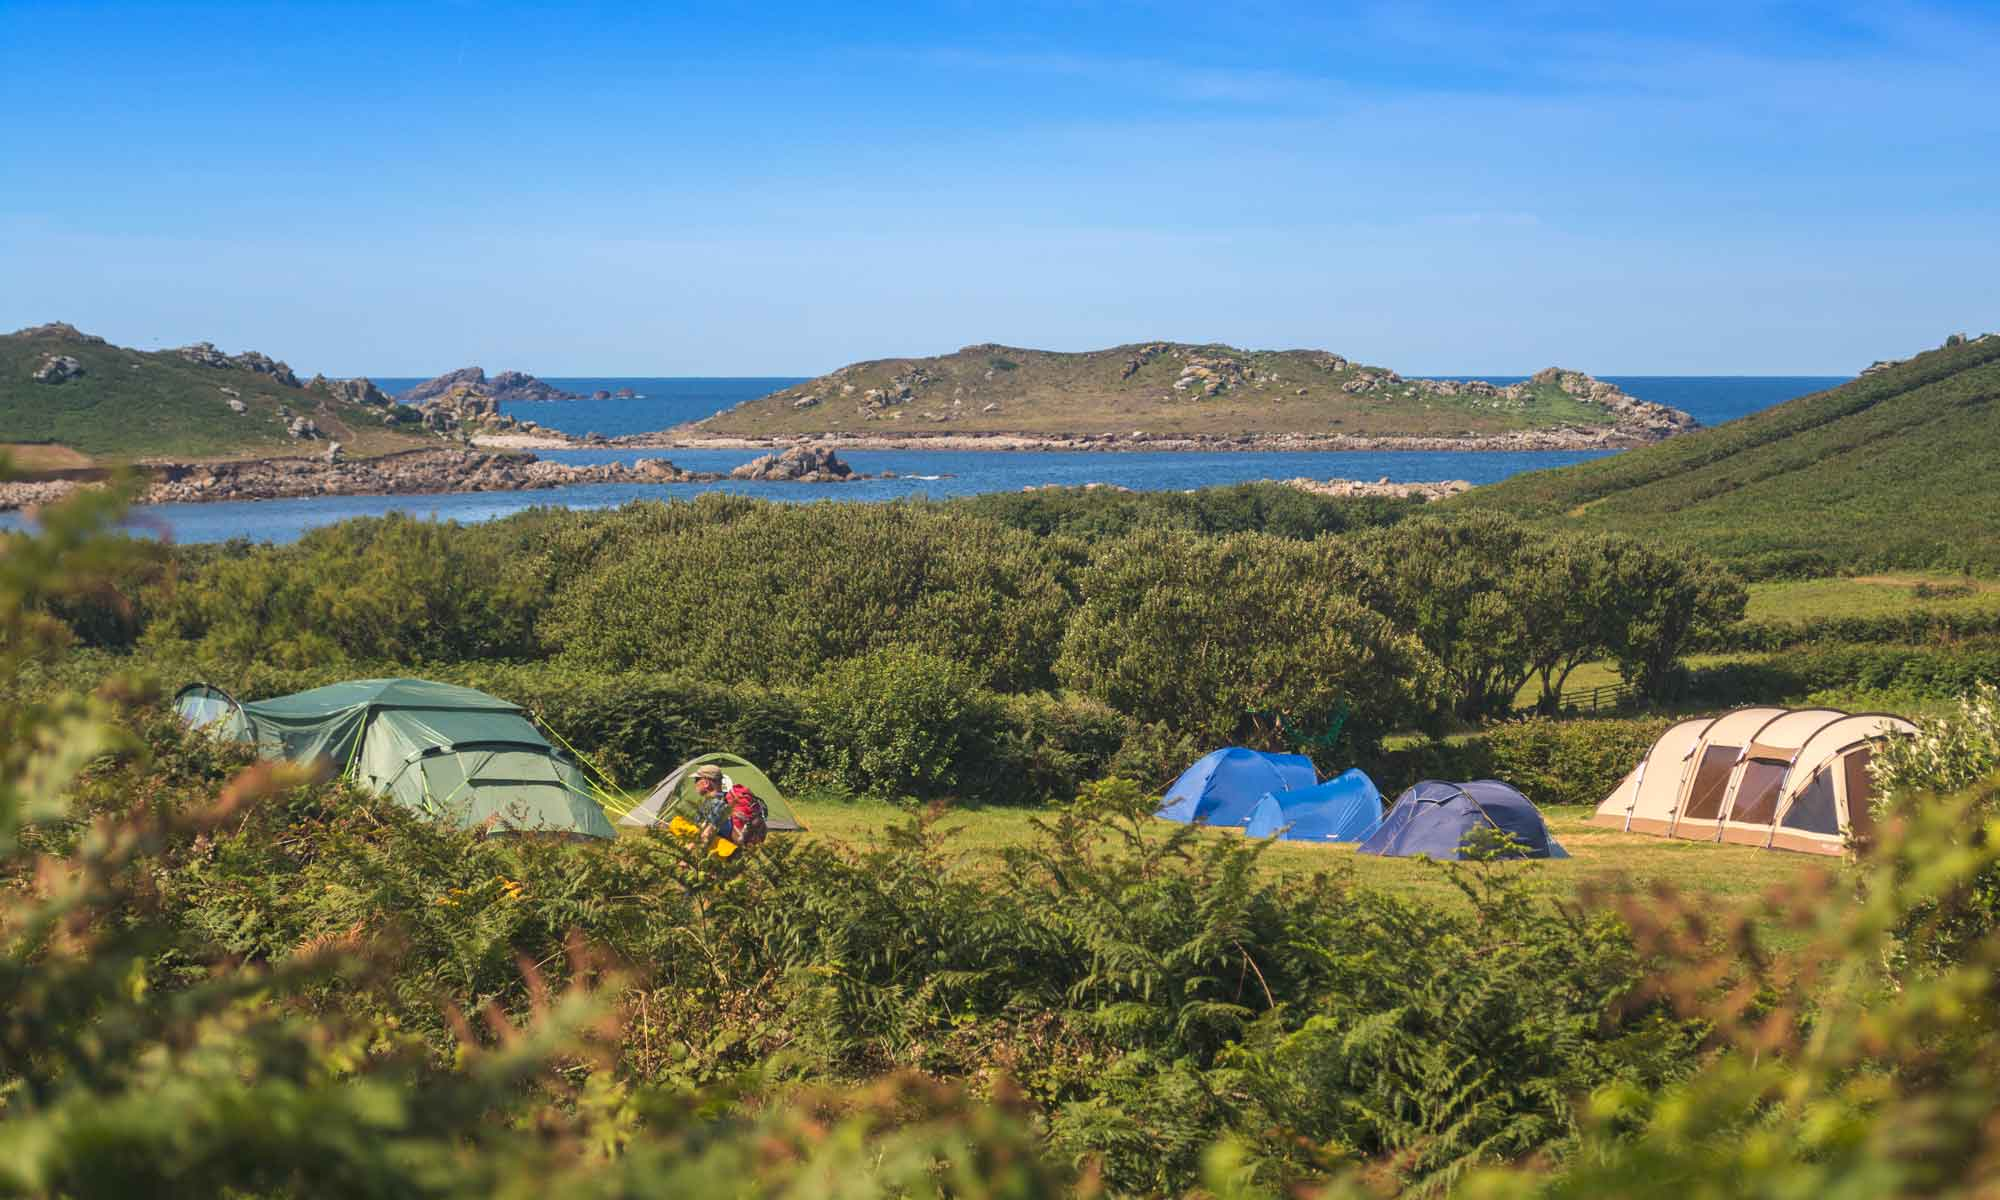 Bryher Campsite Isles of Scilly Camping